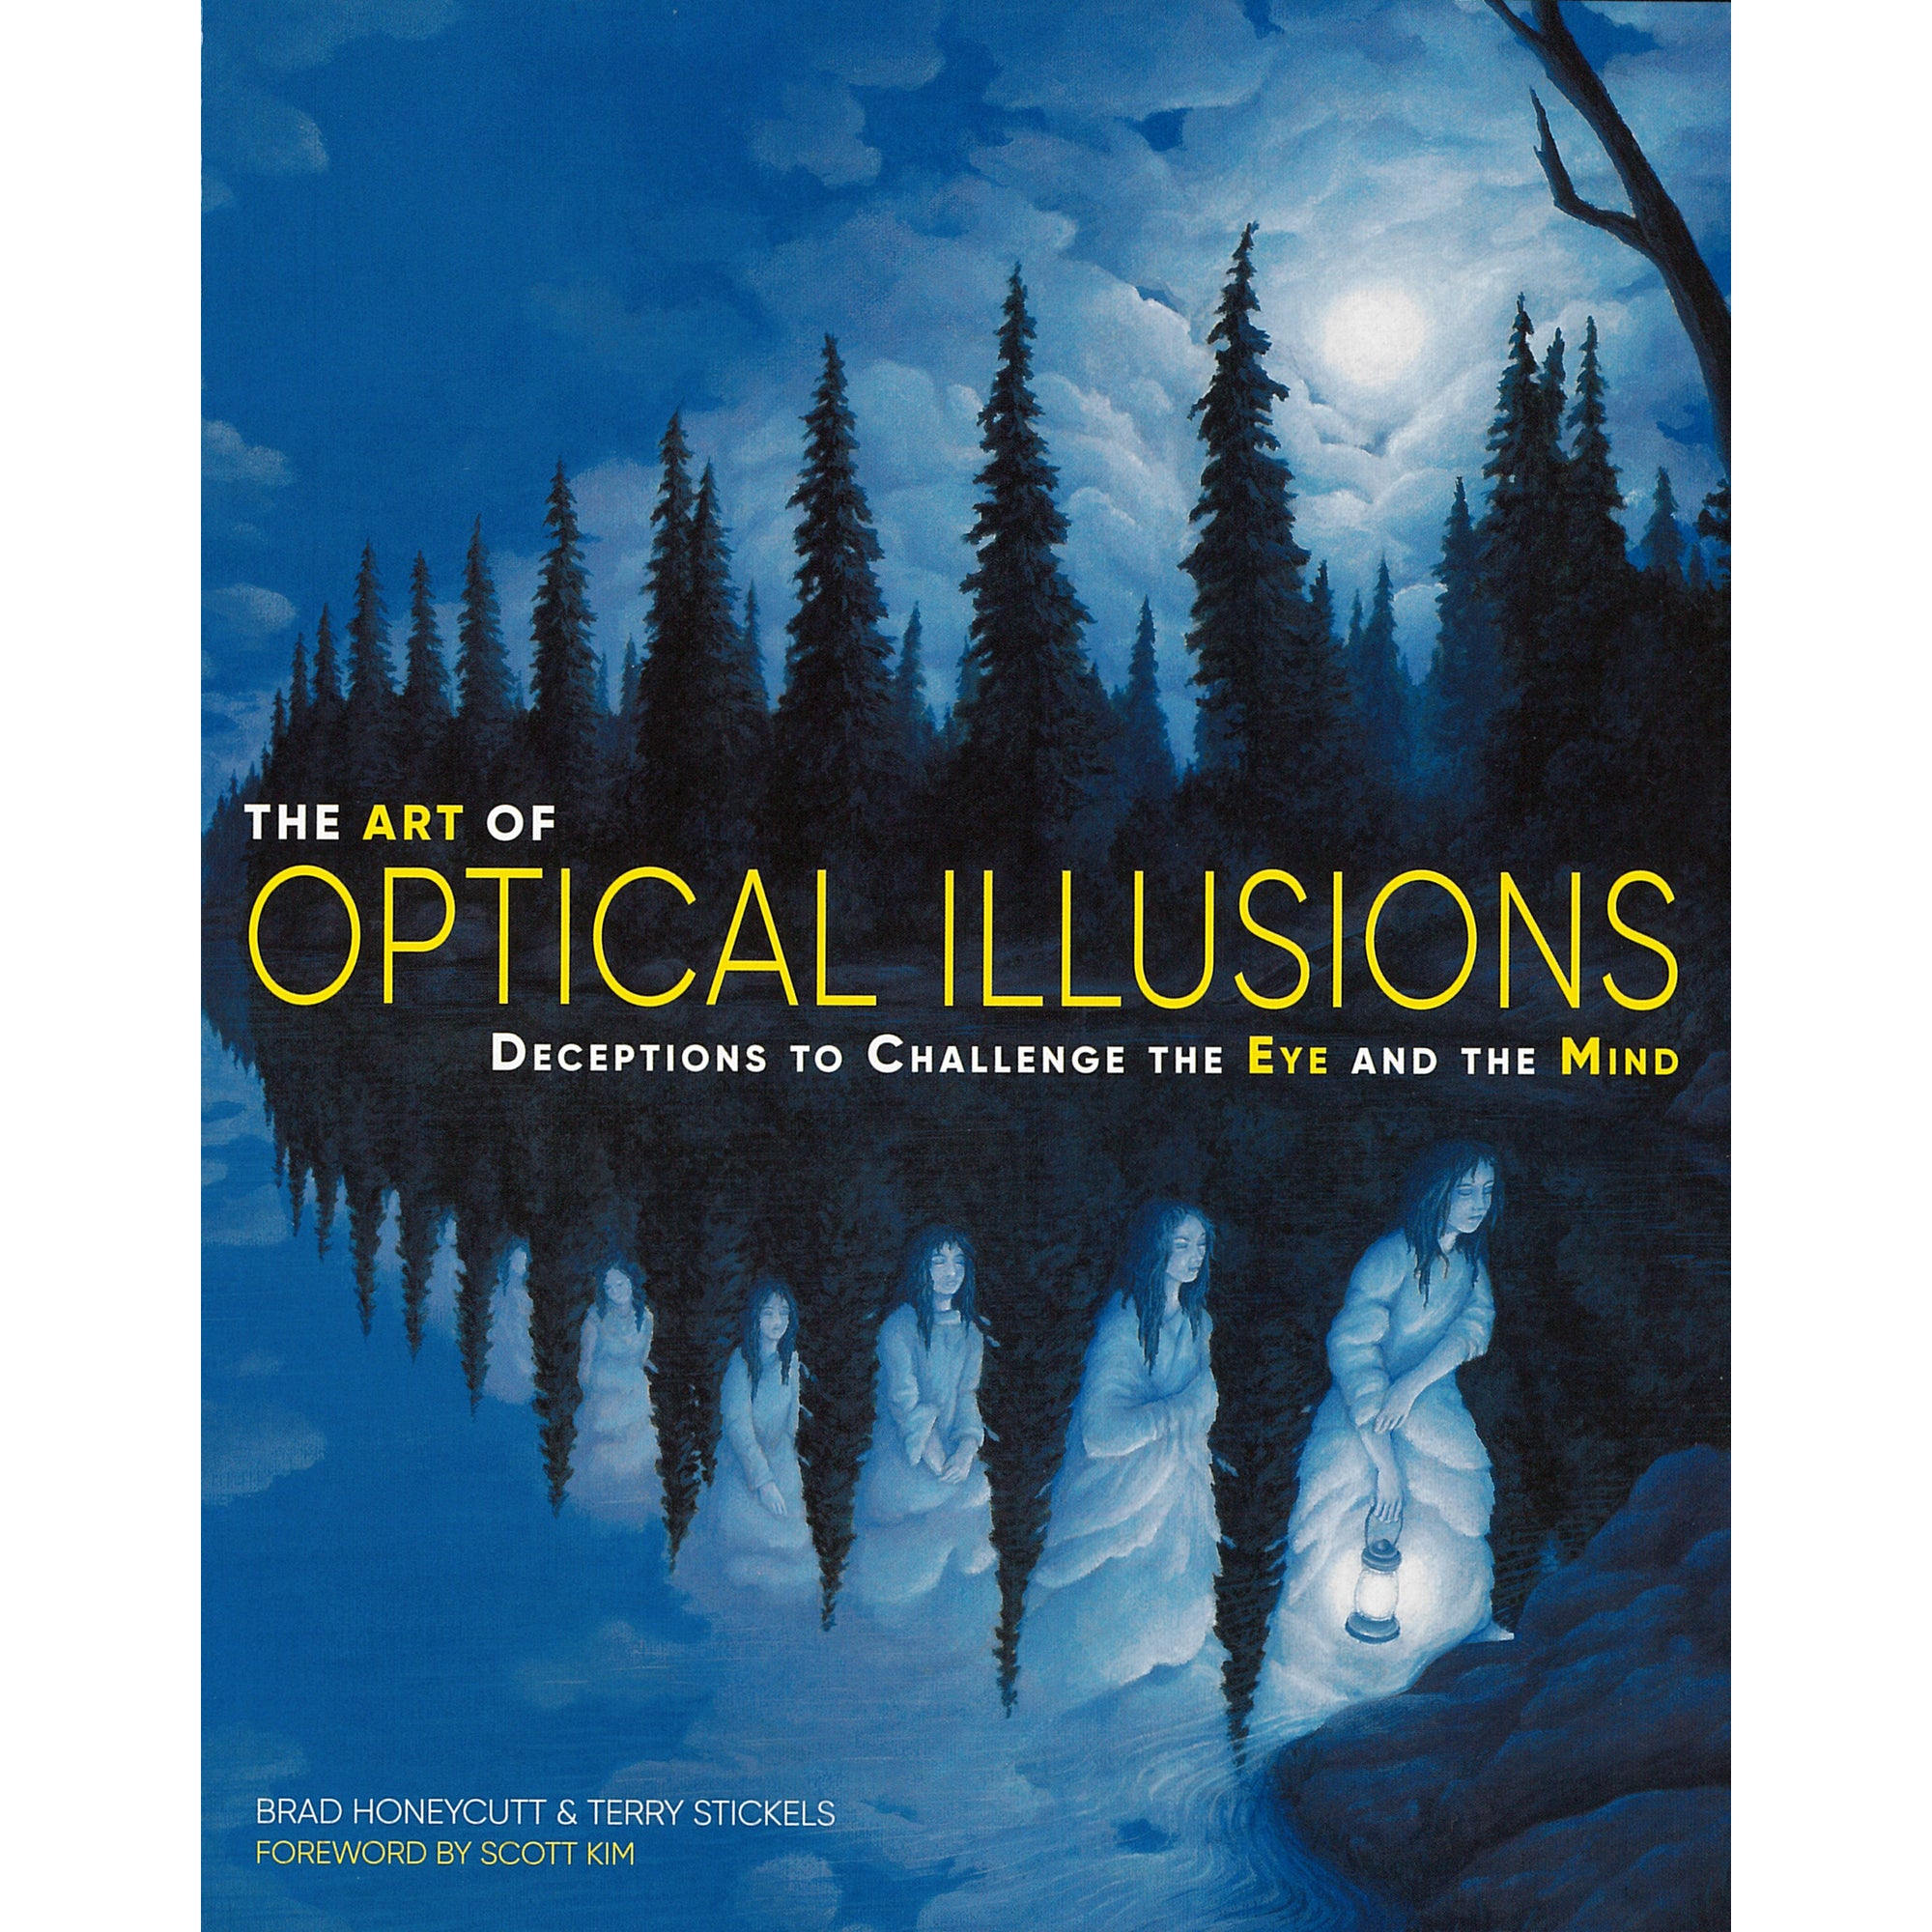 The Art of Optical Illusions book cover